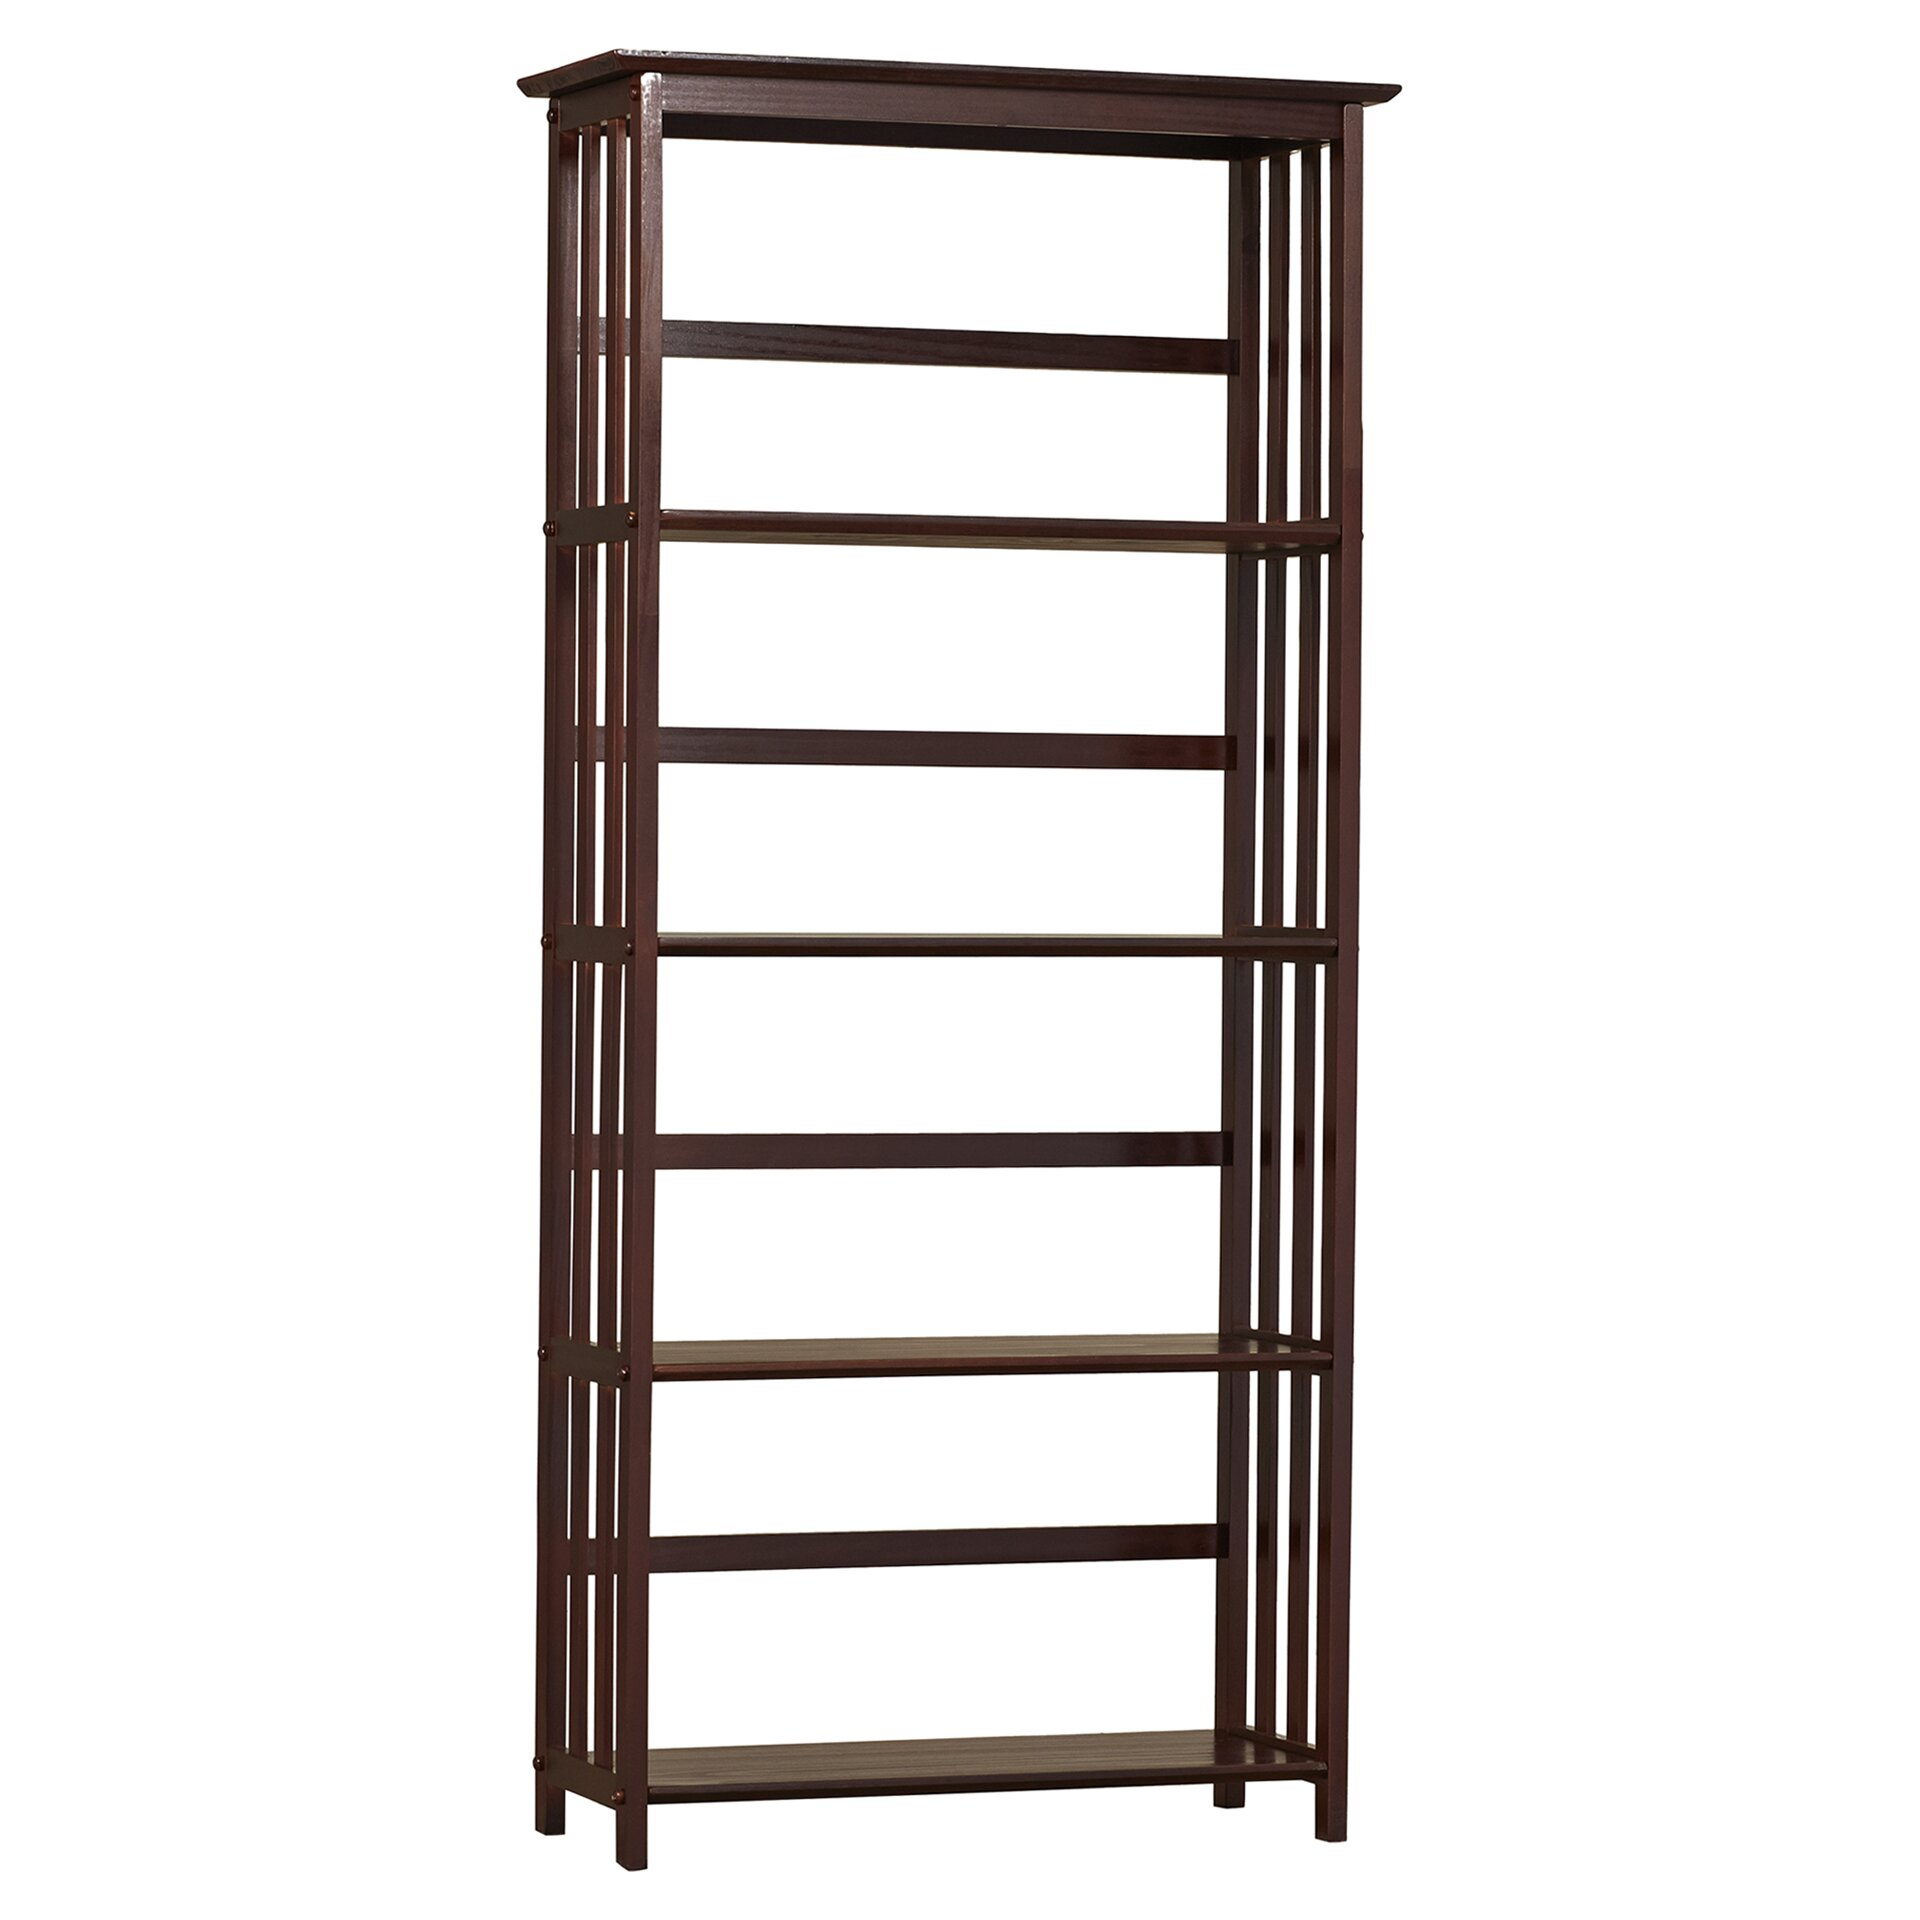 alcott hill 63 etagere bookcase reviews wayfair. Black Bedroom Furniture Sets. Home Design Ideas